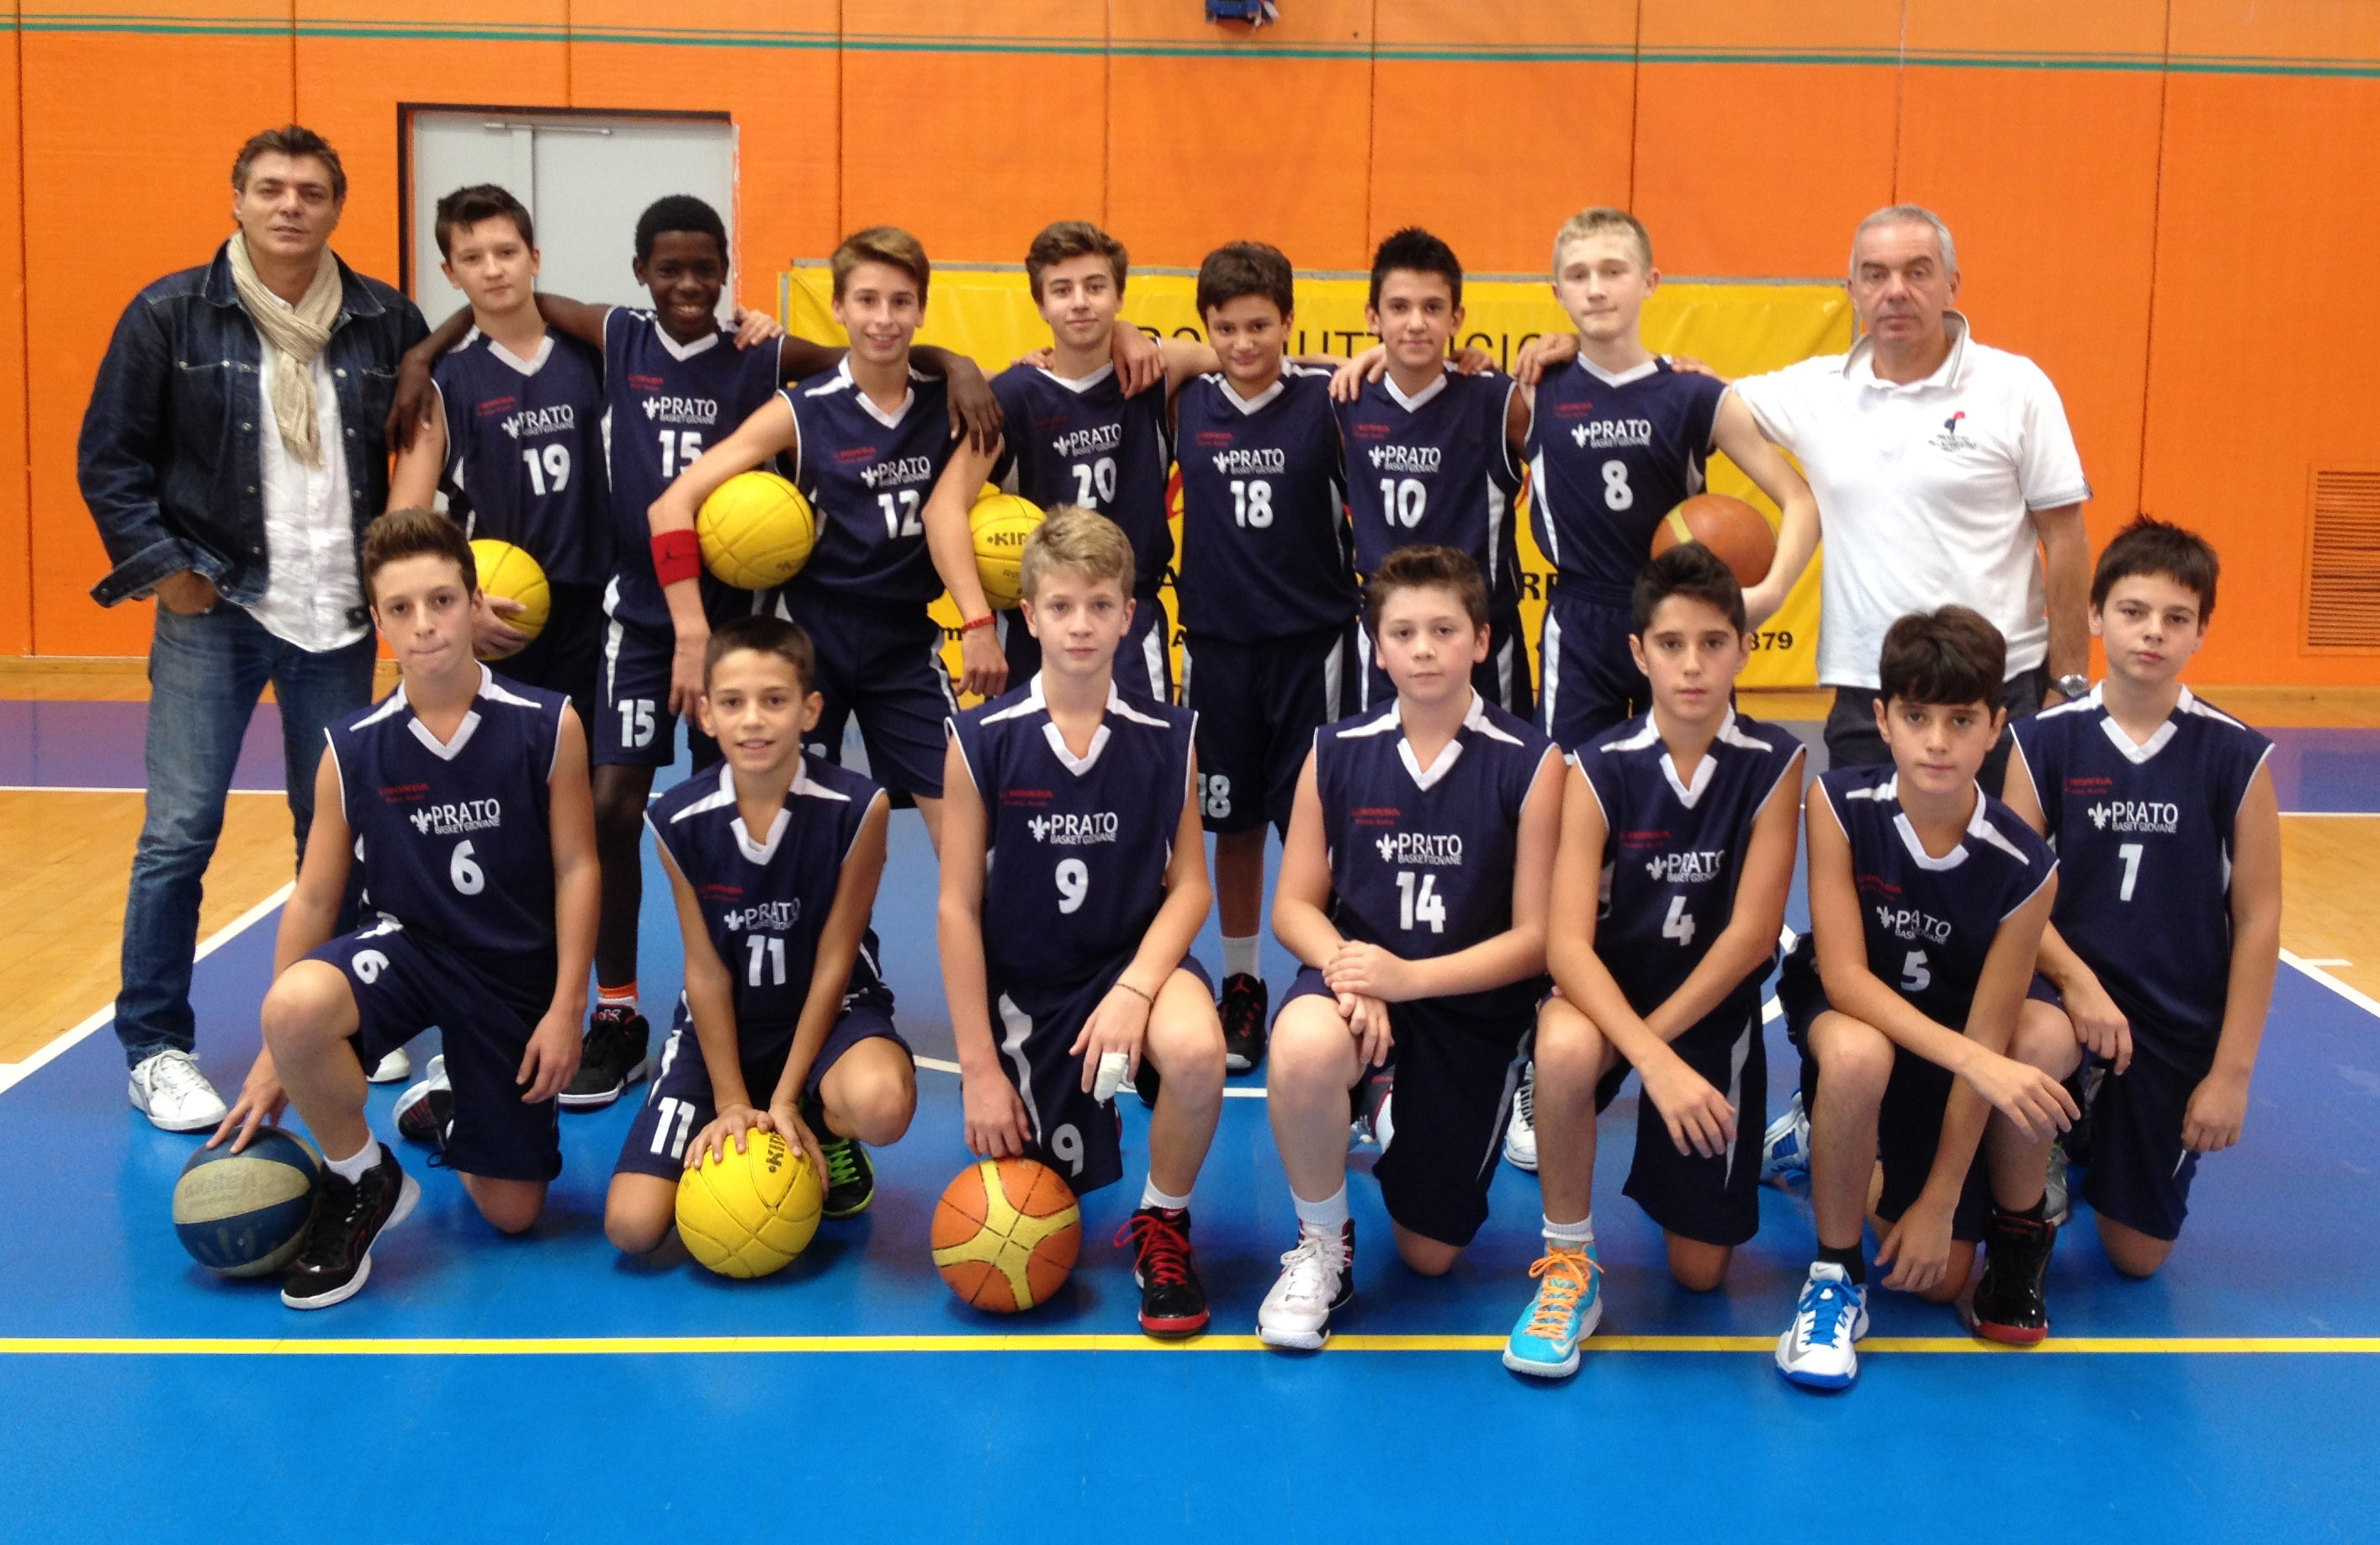 UNDER 13 : CONQUISTATE LE FINAL FOUR CON UNA GIORNATA DI ANTICIPO